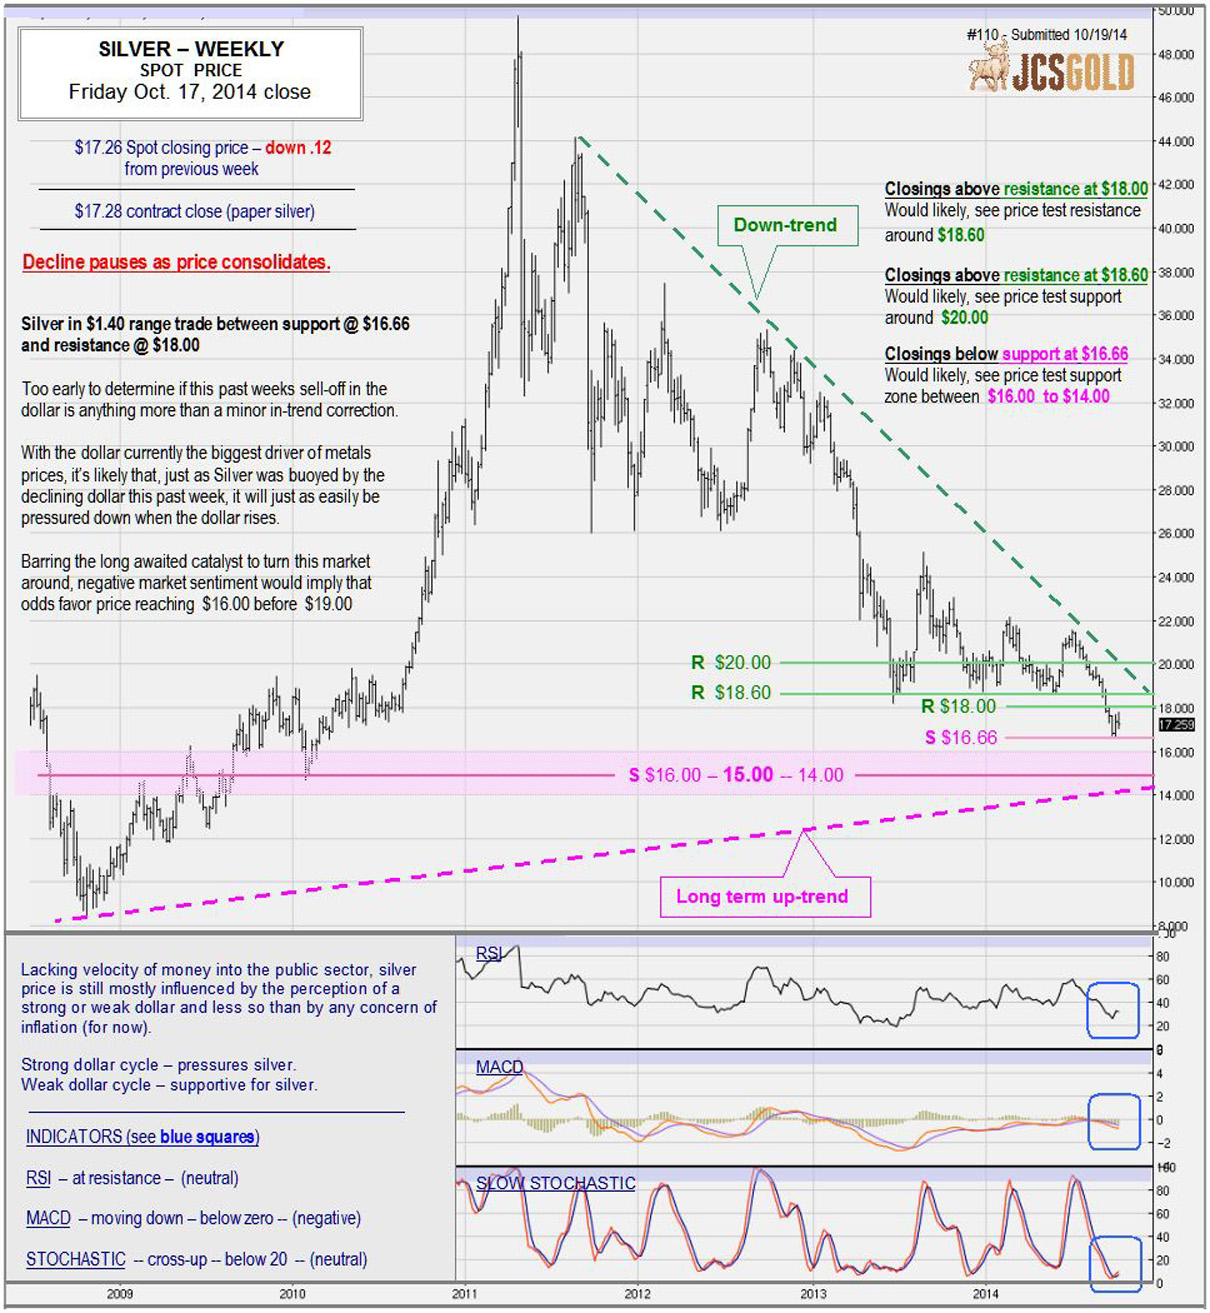 Oct. 17, 2014 chart & commentary